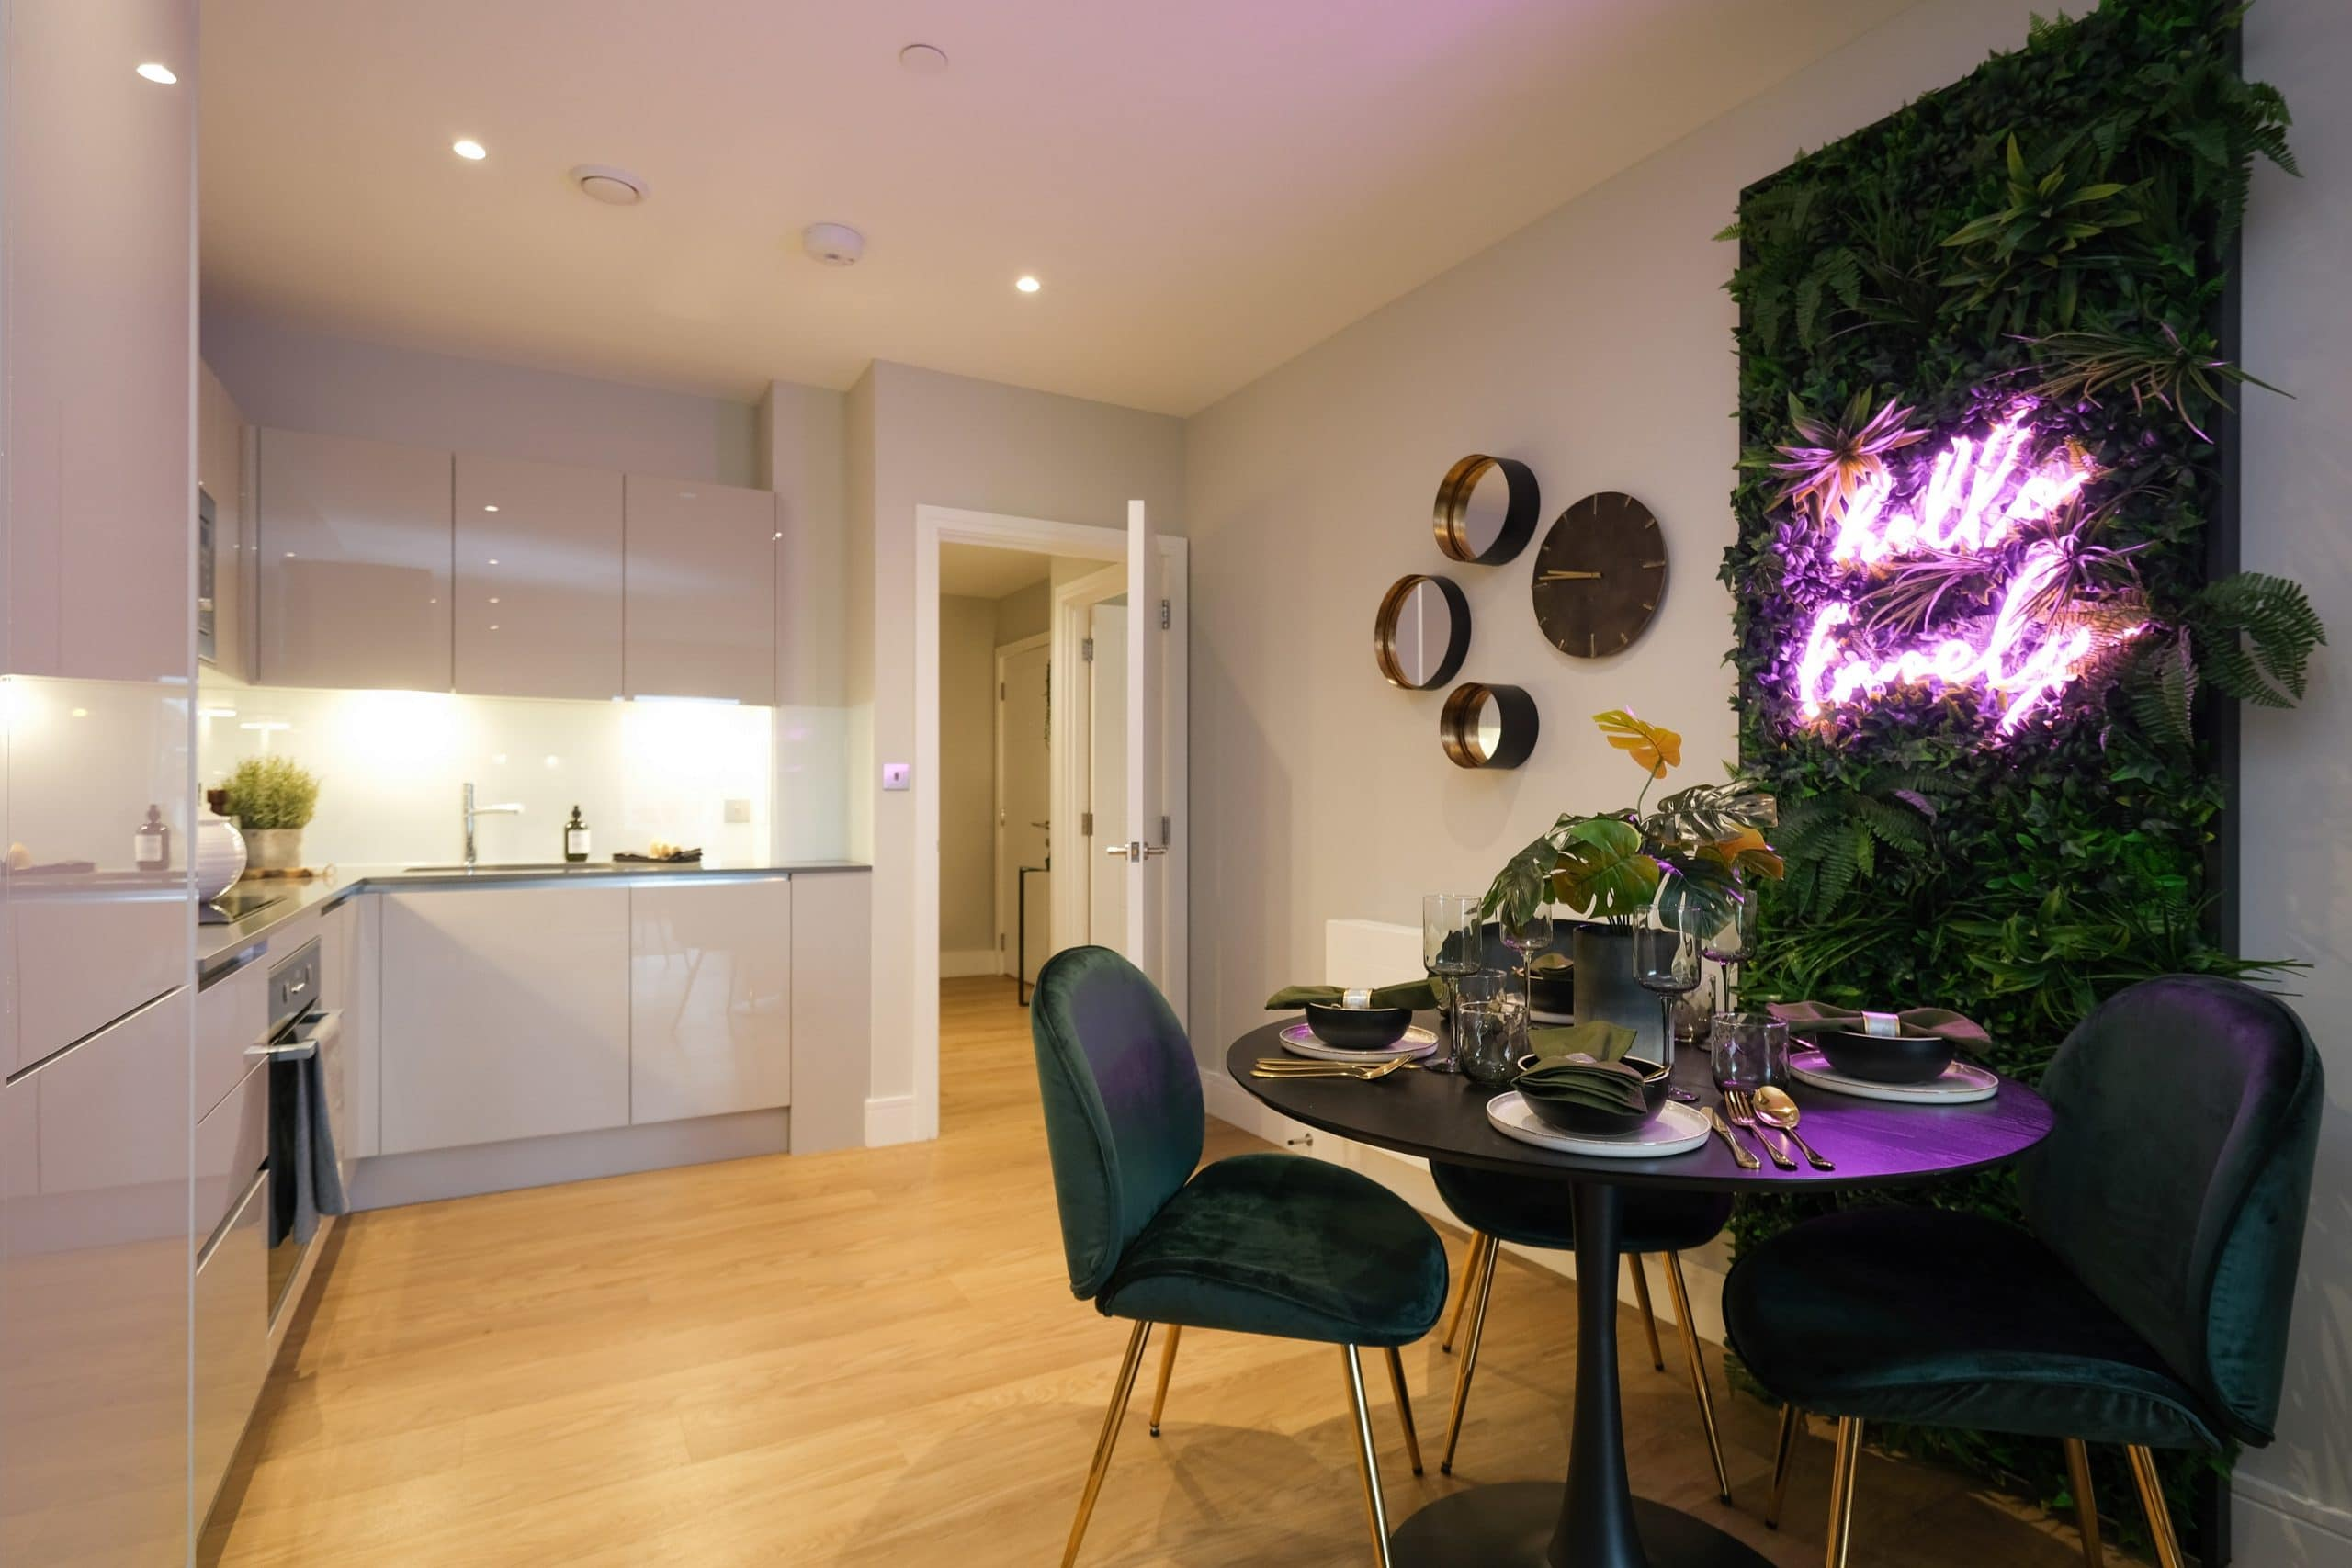 Kitchen area space at The Switch by Catalyst New Homes - Shared Ownership homes available on Share to Buy